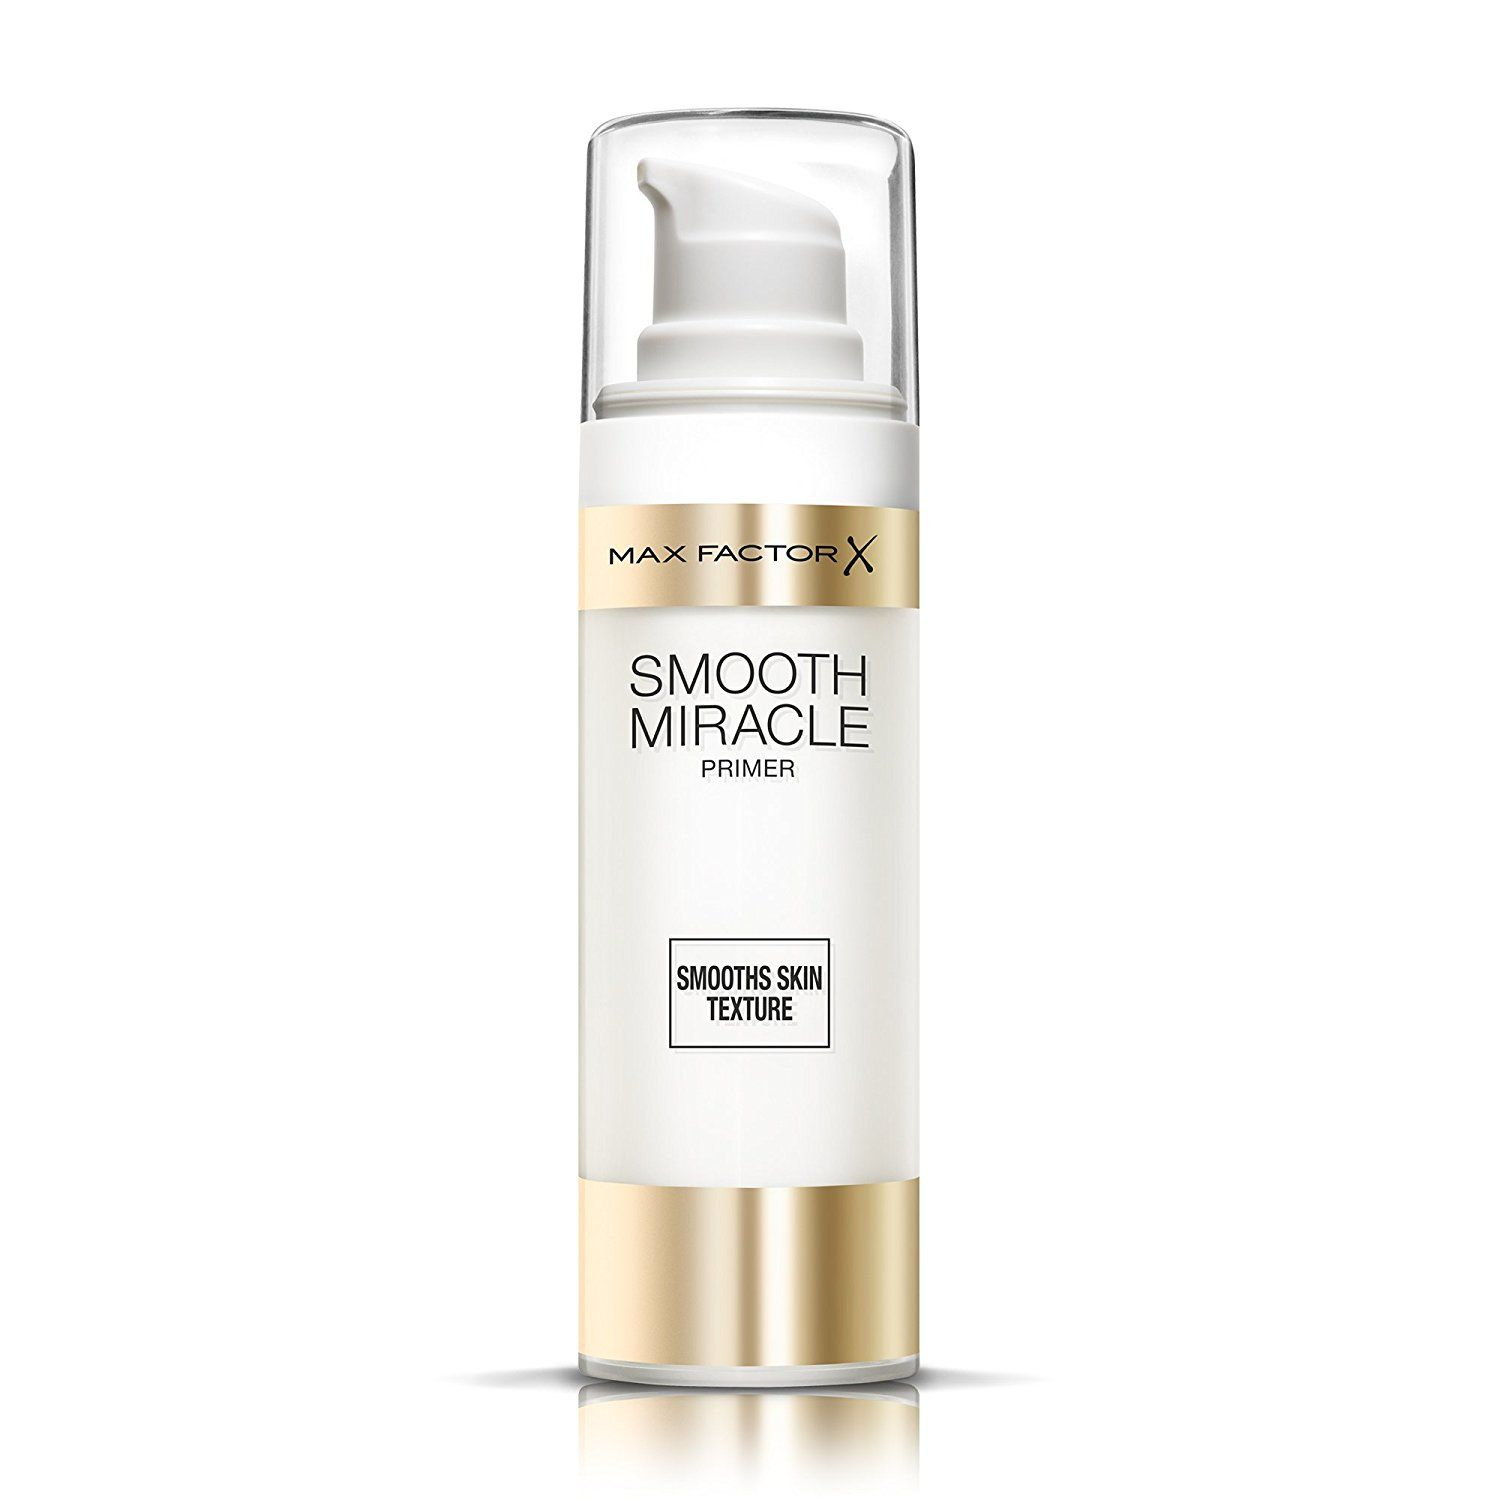 2 x Max Factor Smooth Miracle Primer Smooths Skin Texture 30ml - Sealed